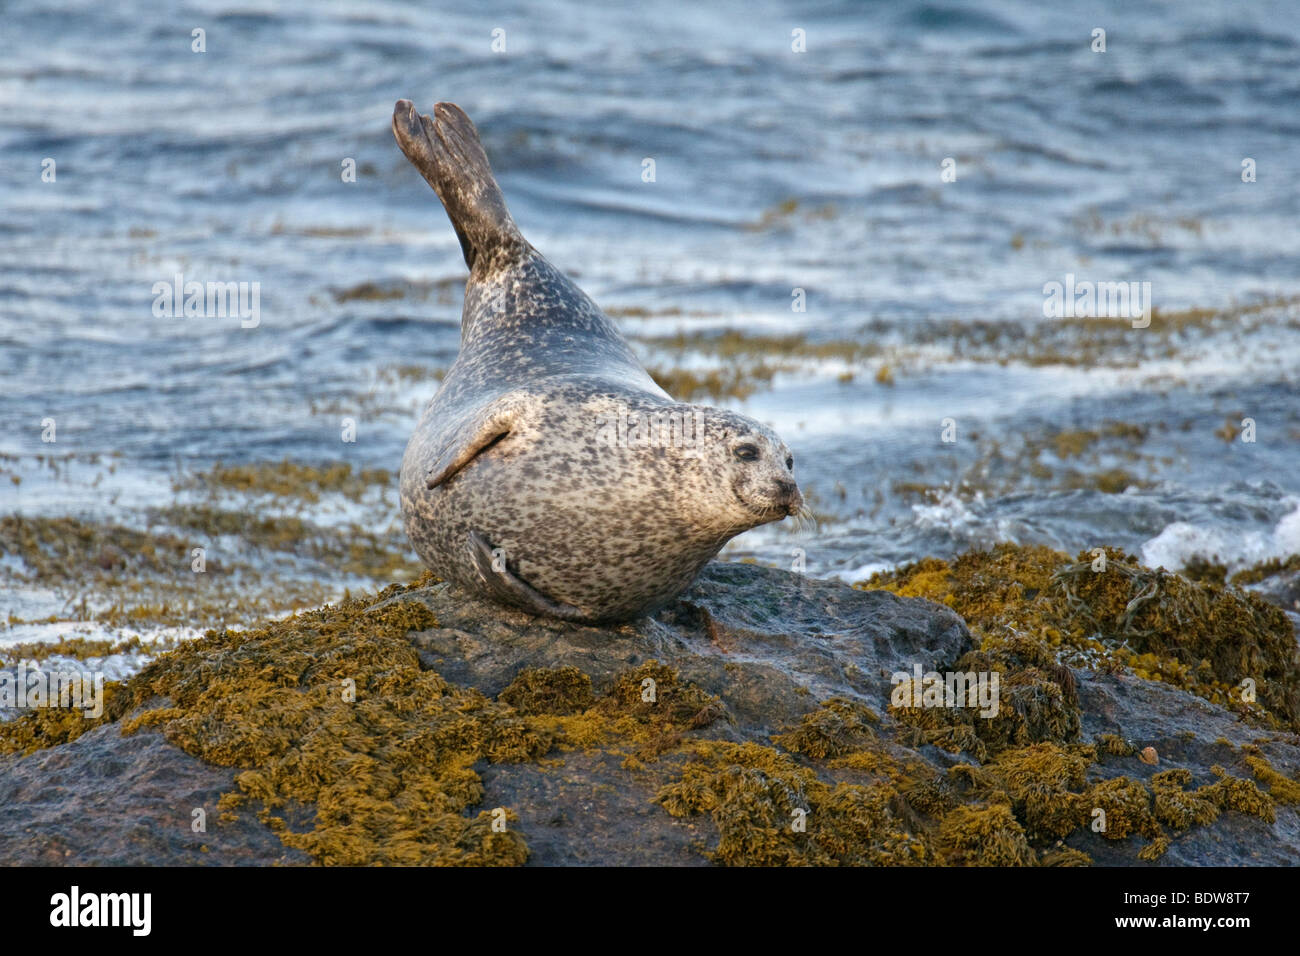 Common or harbour seal Phoca vitulina hauled out on rocky islet. South Uist, Scotland. - Stock Image